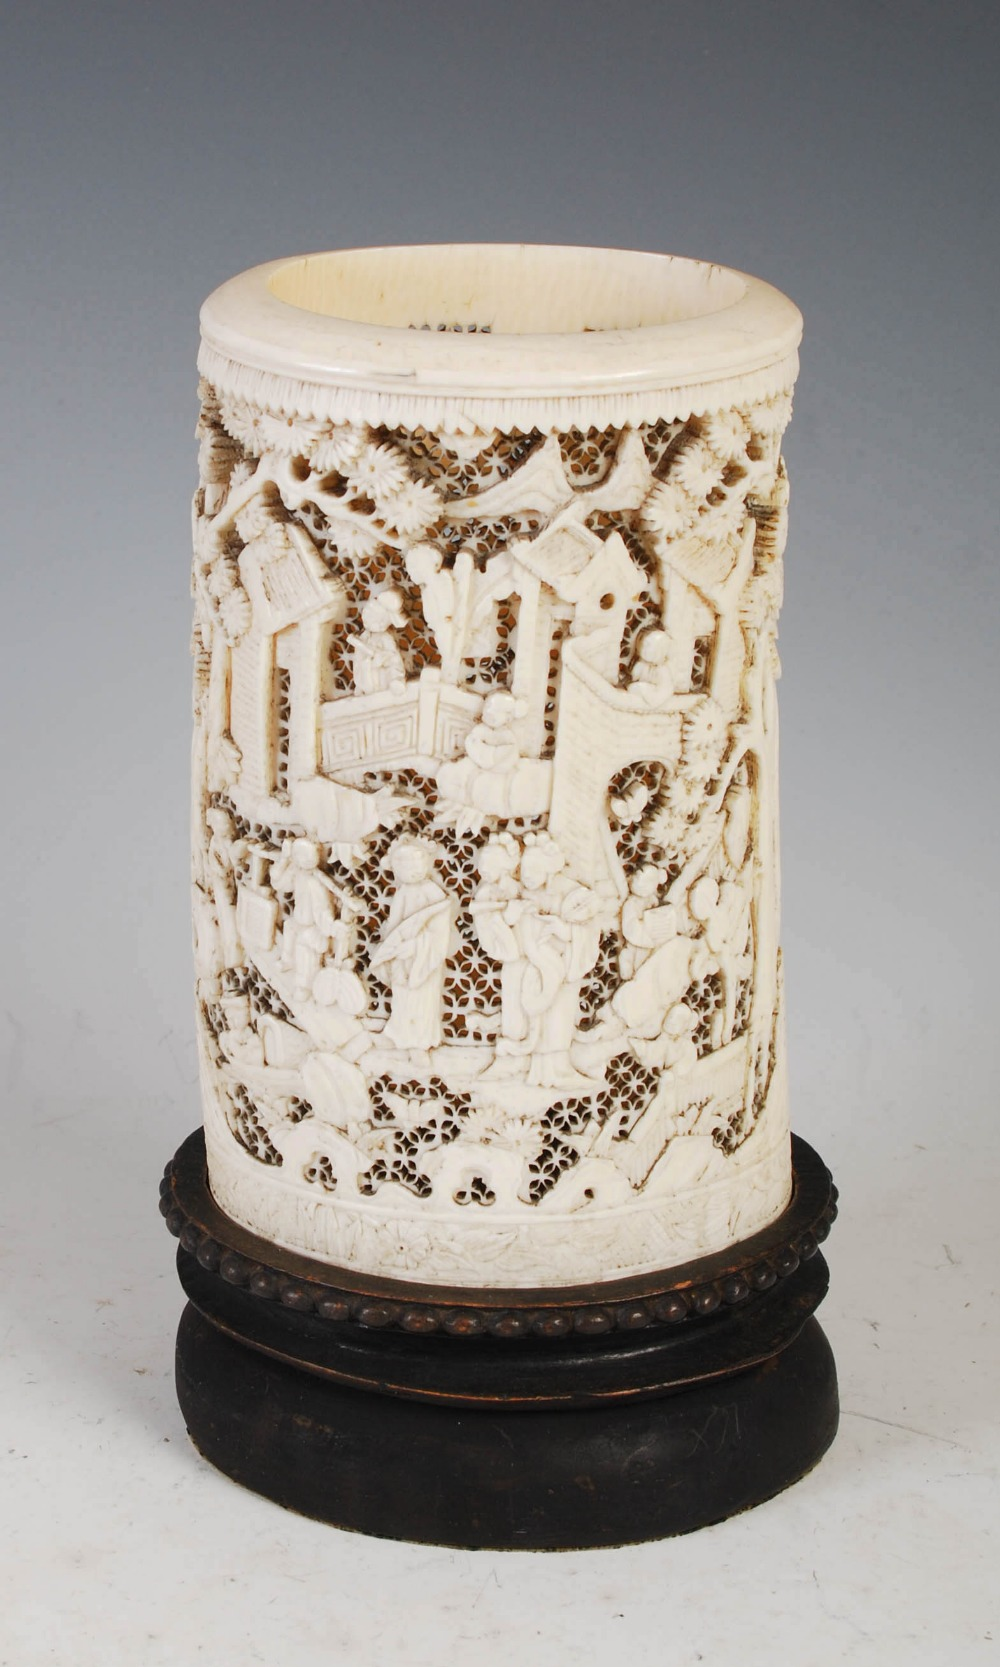 A Chinese ivory tusk vase, Qing Dynasty, carved with figures, pavilions and pine trees on a